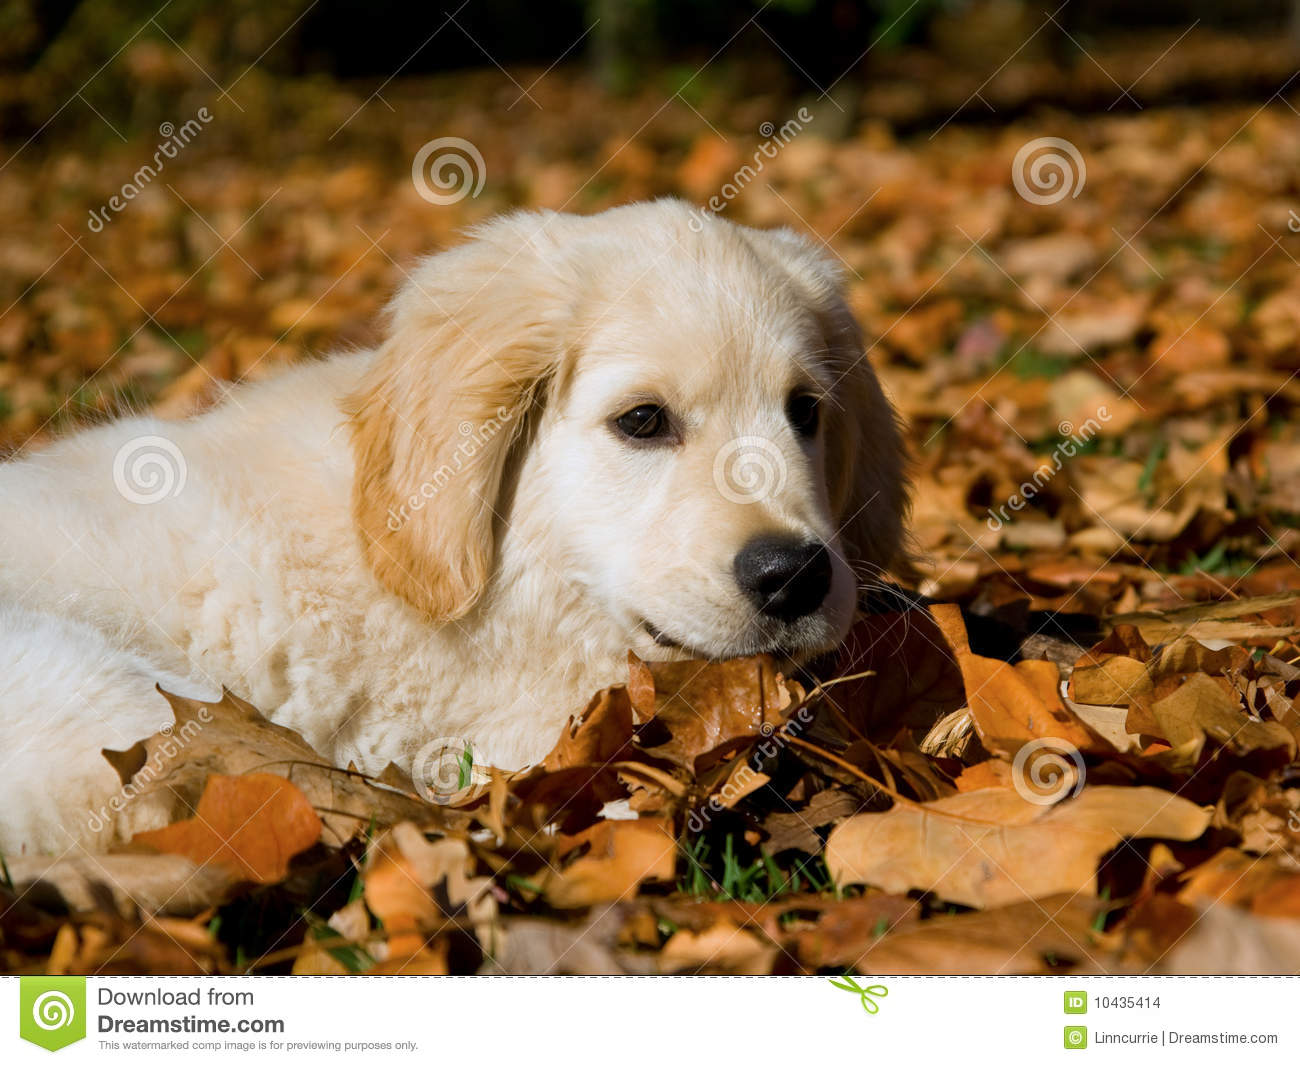 Computer Wallpaper Fall Leaves Cute Golden Retriever Puppy Lying On Autumn Leaves Stock